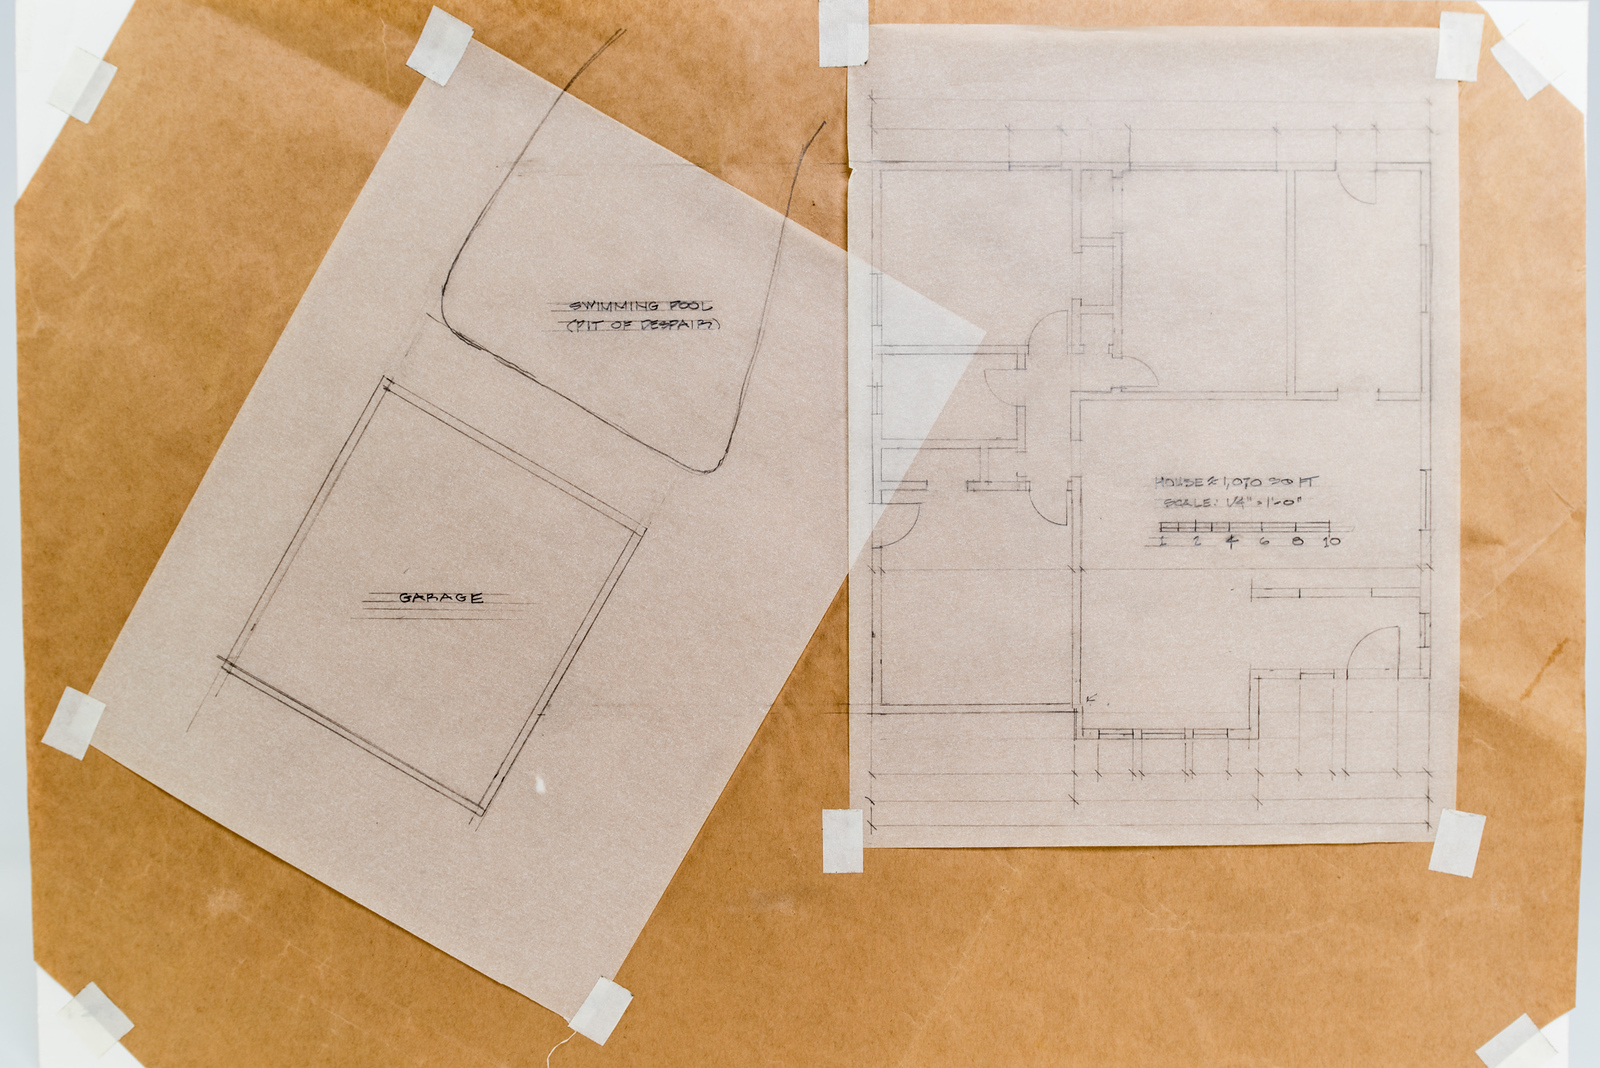 Plan view of the existing house, detached double garage and empty swimming pool.